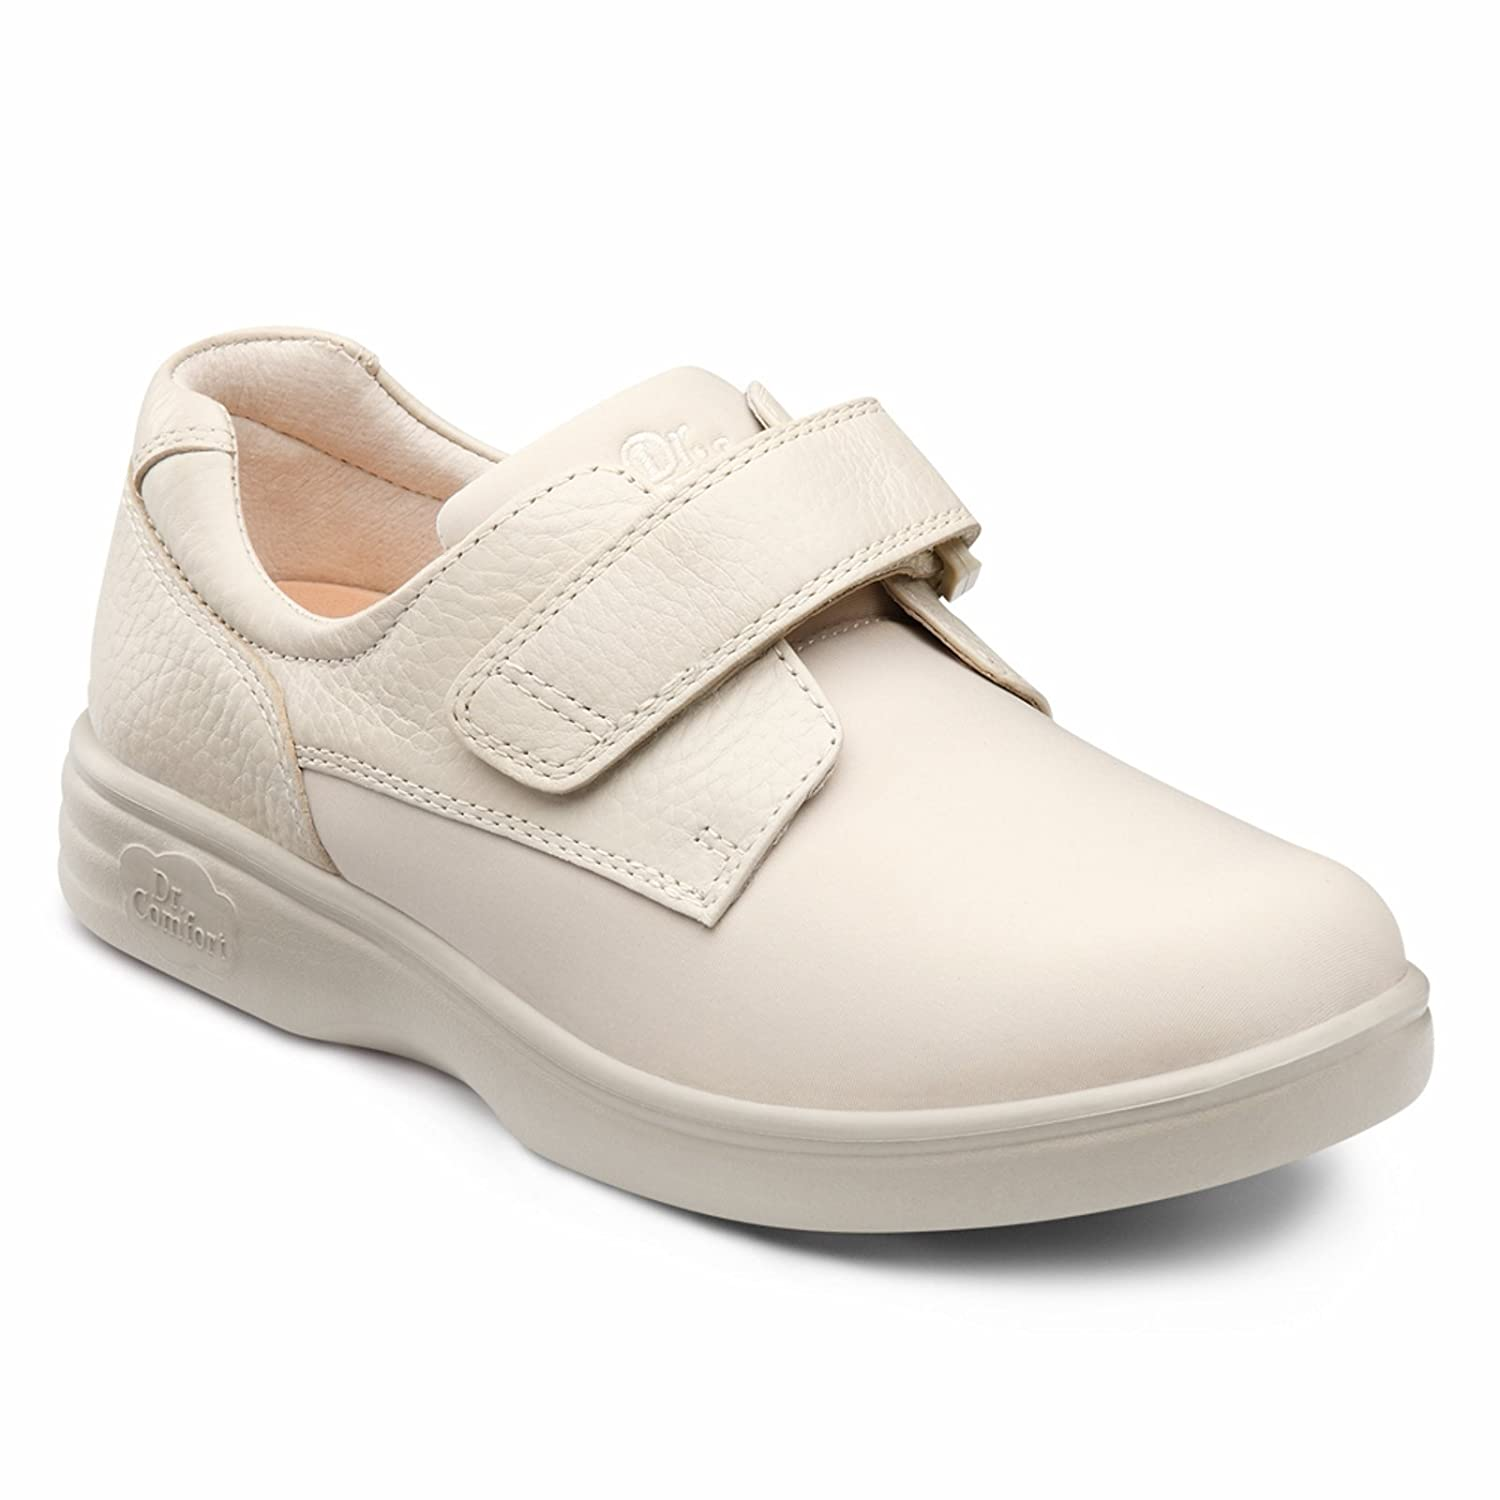 Dr. Comfort Annie Womens Casual Shoe B00IO7ZPJC -8.5 Medium (A-B) Beige Velcro US Woman|Beige